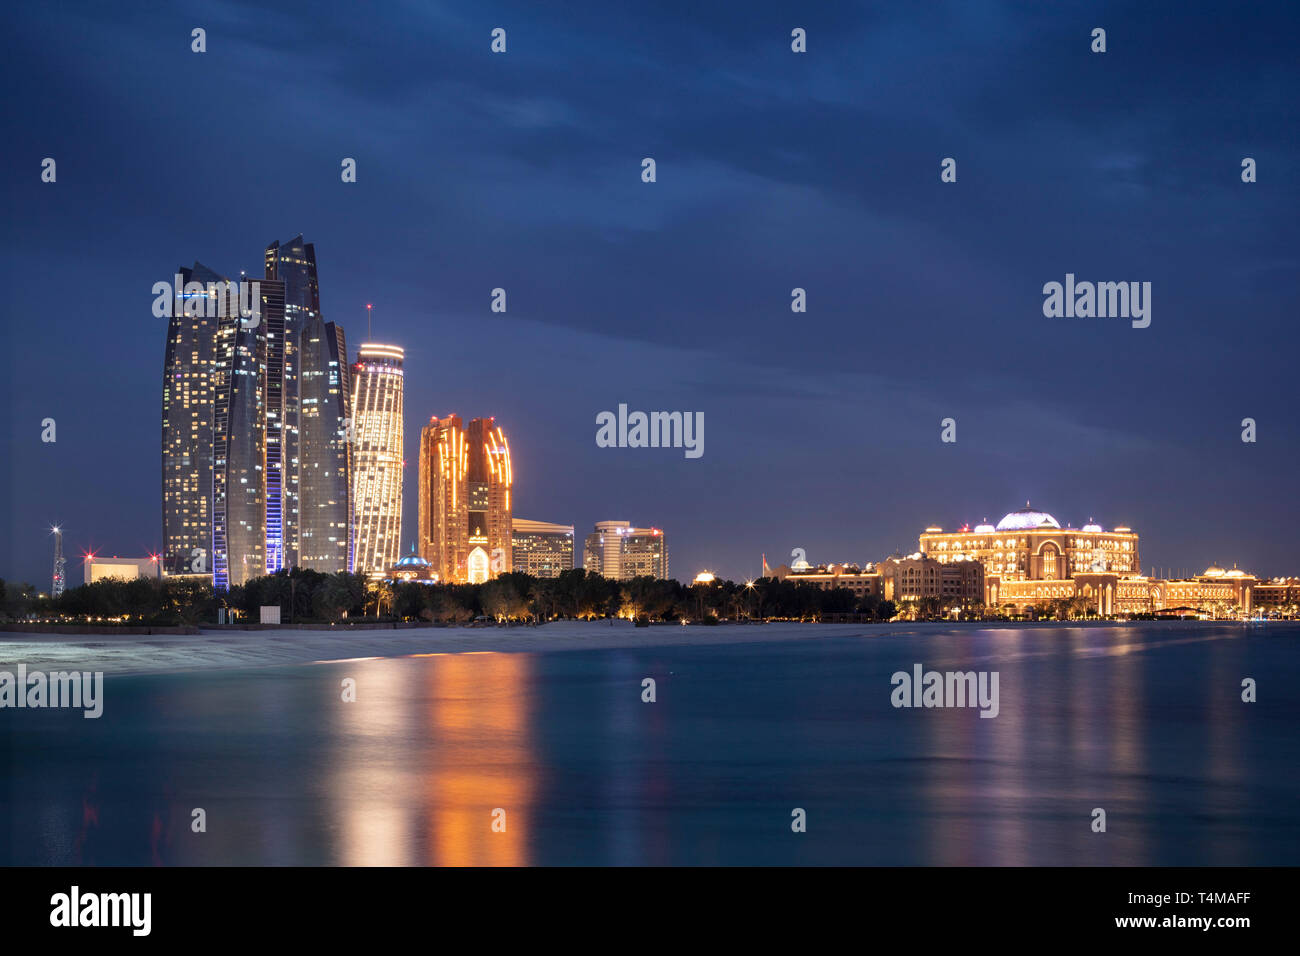 ABU DHABI, UNITED ARAB EMIRATES - April 5, 2019: Etihad Towers (left), which consist of residential apartments and a Jumeirah hotel, and Emirates Pala - Stock Image